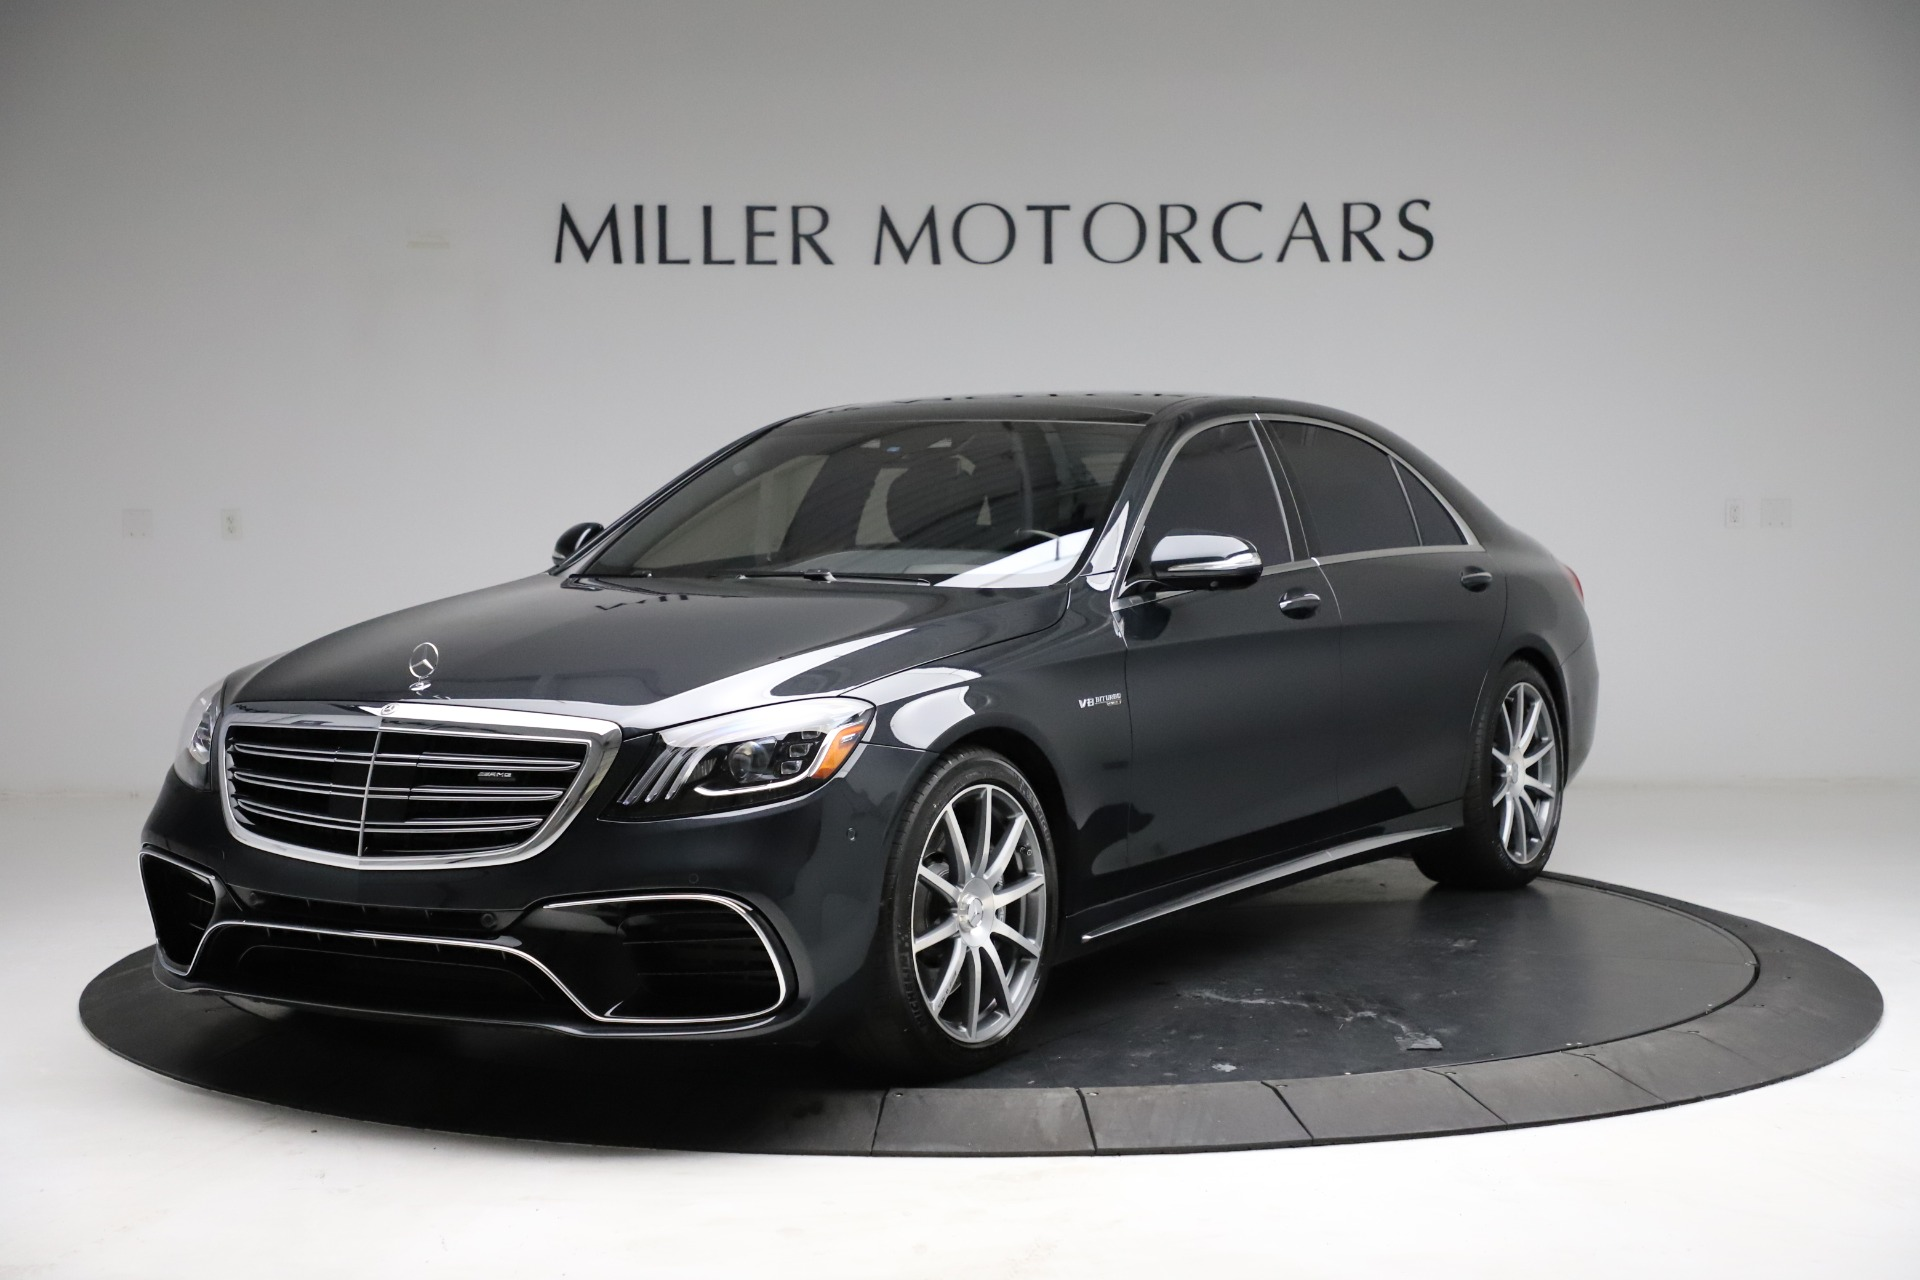 Used 2019 Mercedes-Benz S-Class AMG S 63 for sale $122,900 at Rolls-Royce Motor Cars Greenwich in Greenwich CT 06830 1